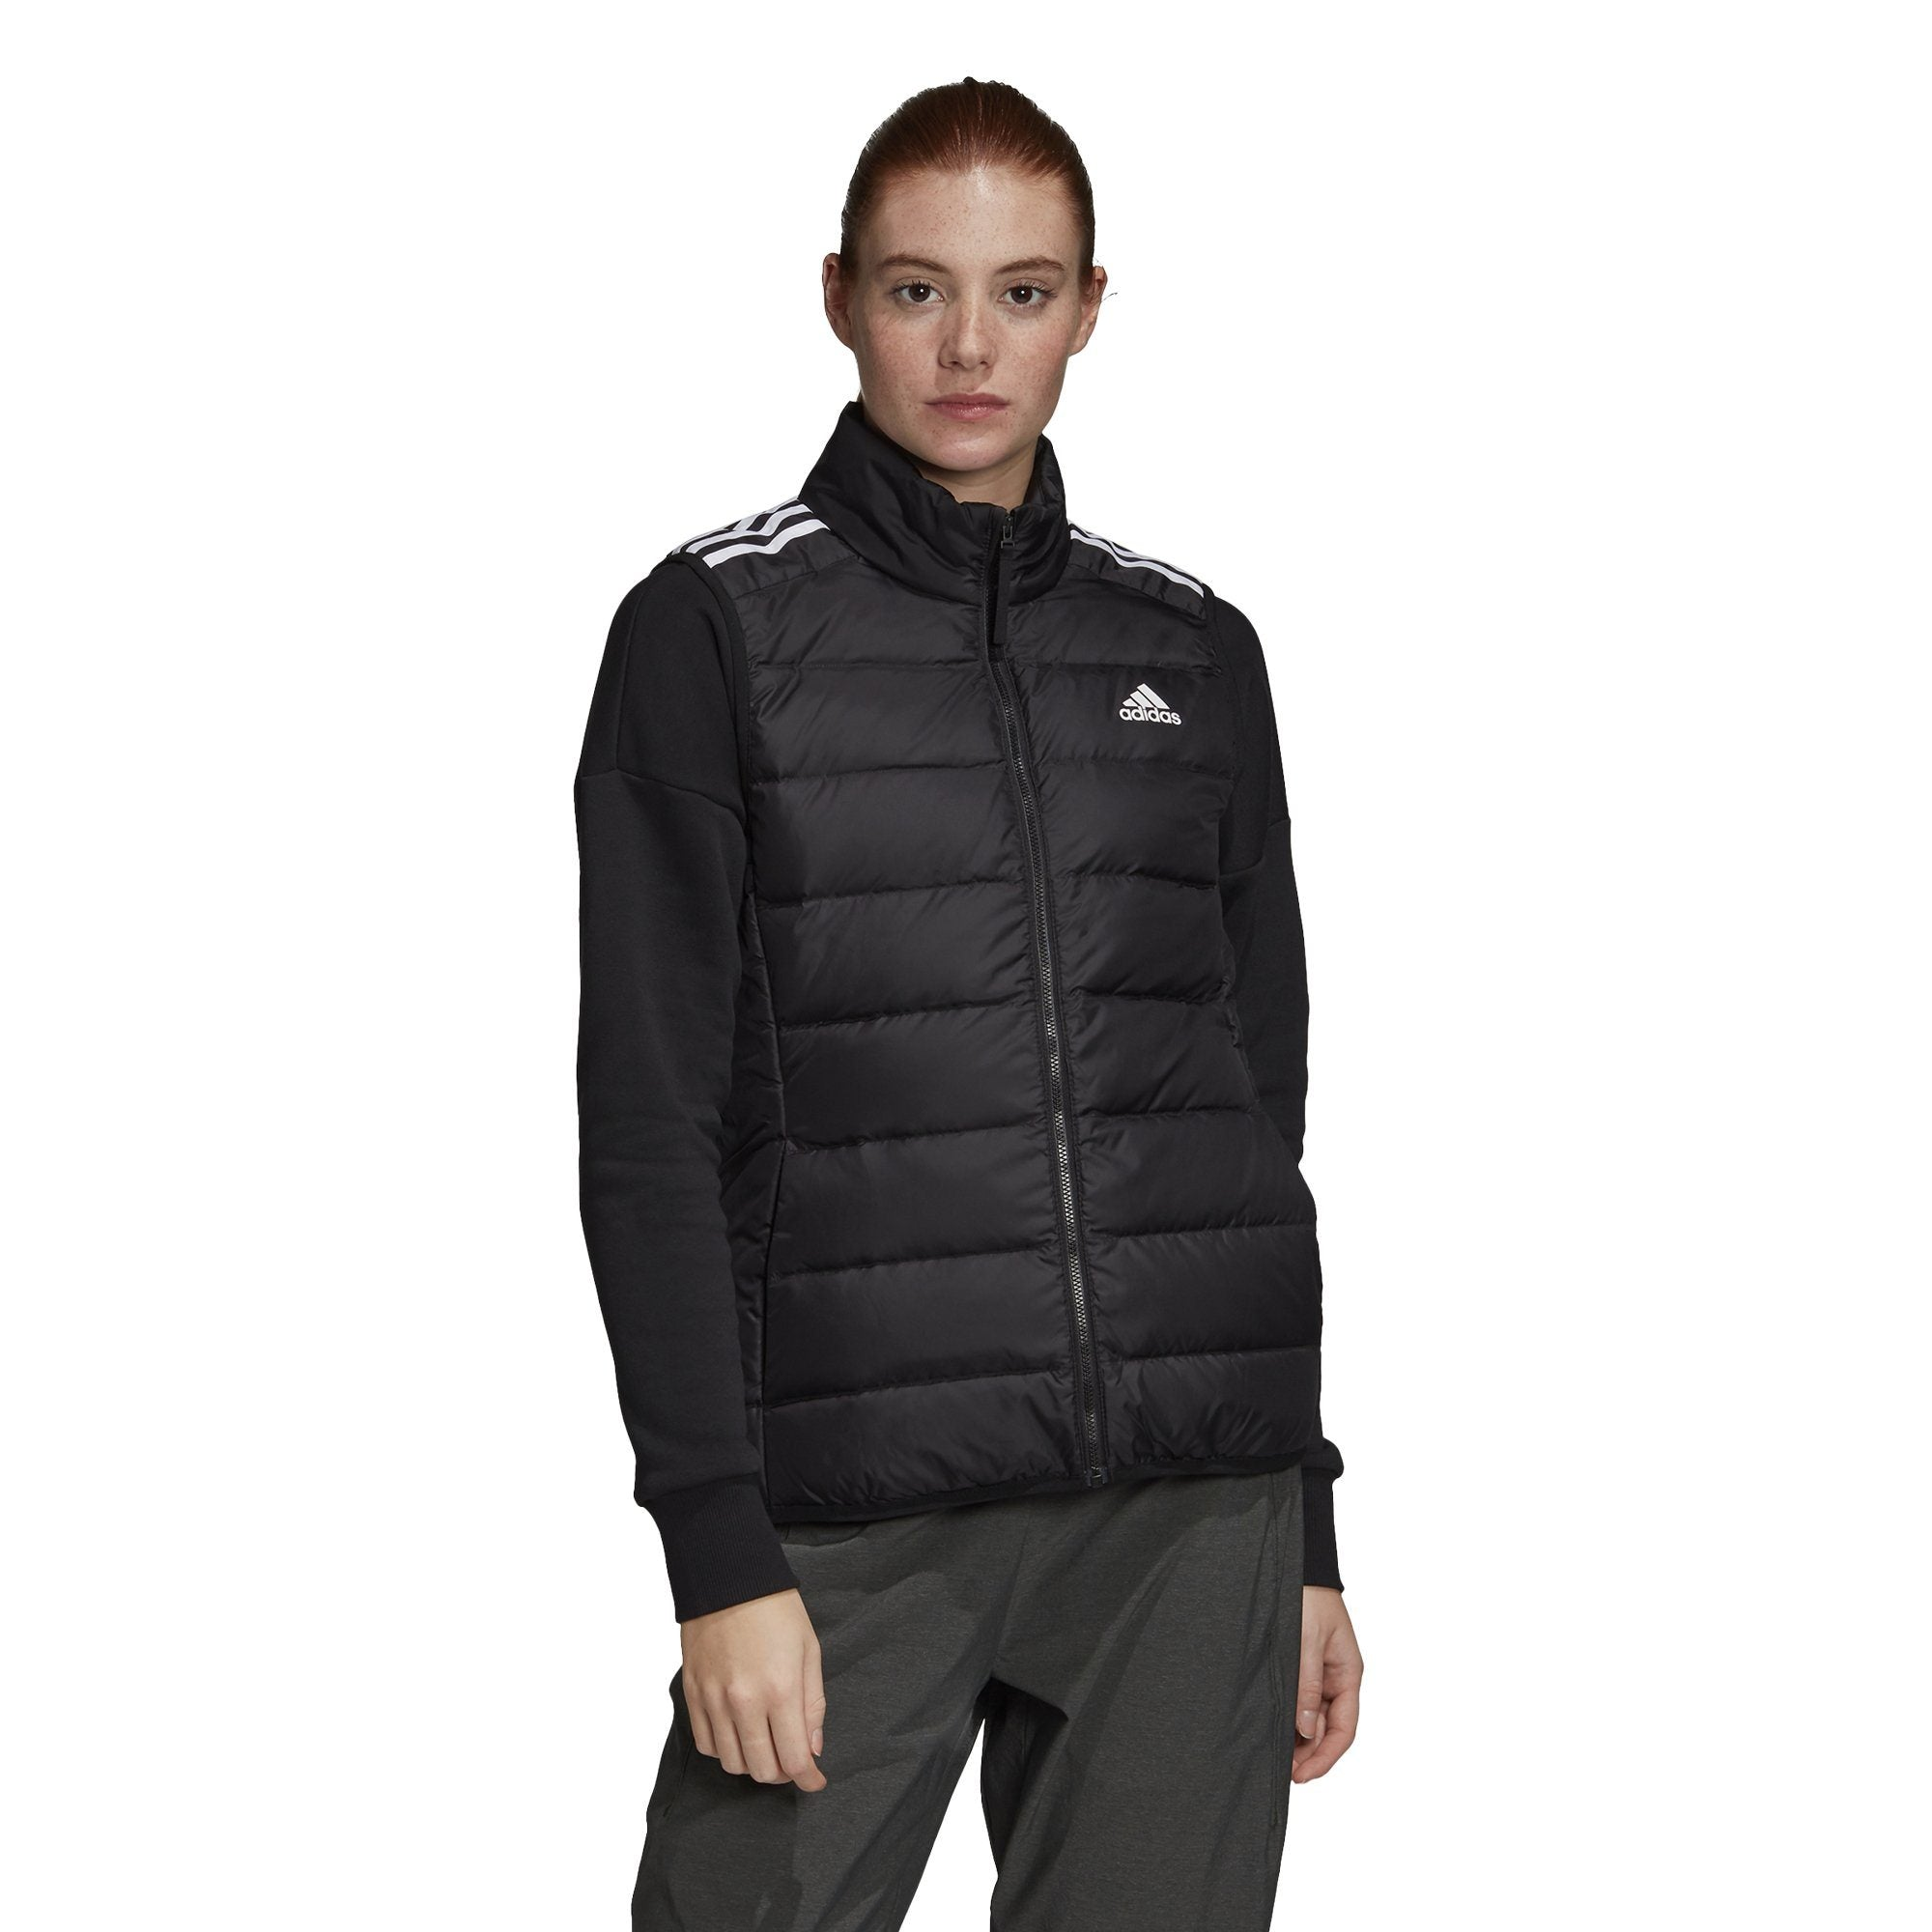 Adidas Womens Essentials Down Vest - black SP-ApparelJacket-Womens Adidas